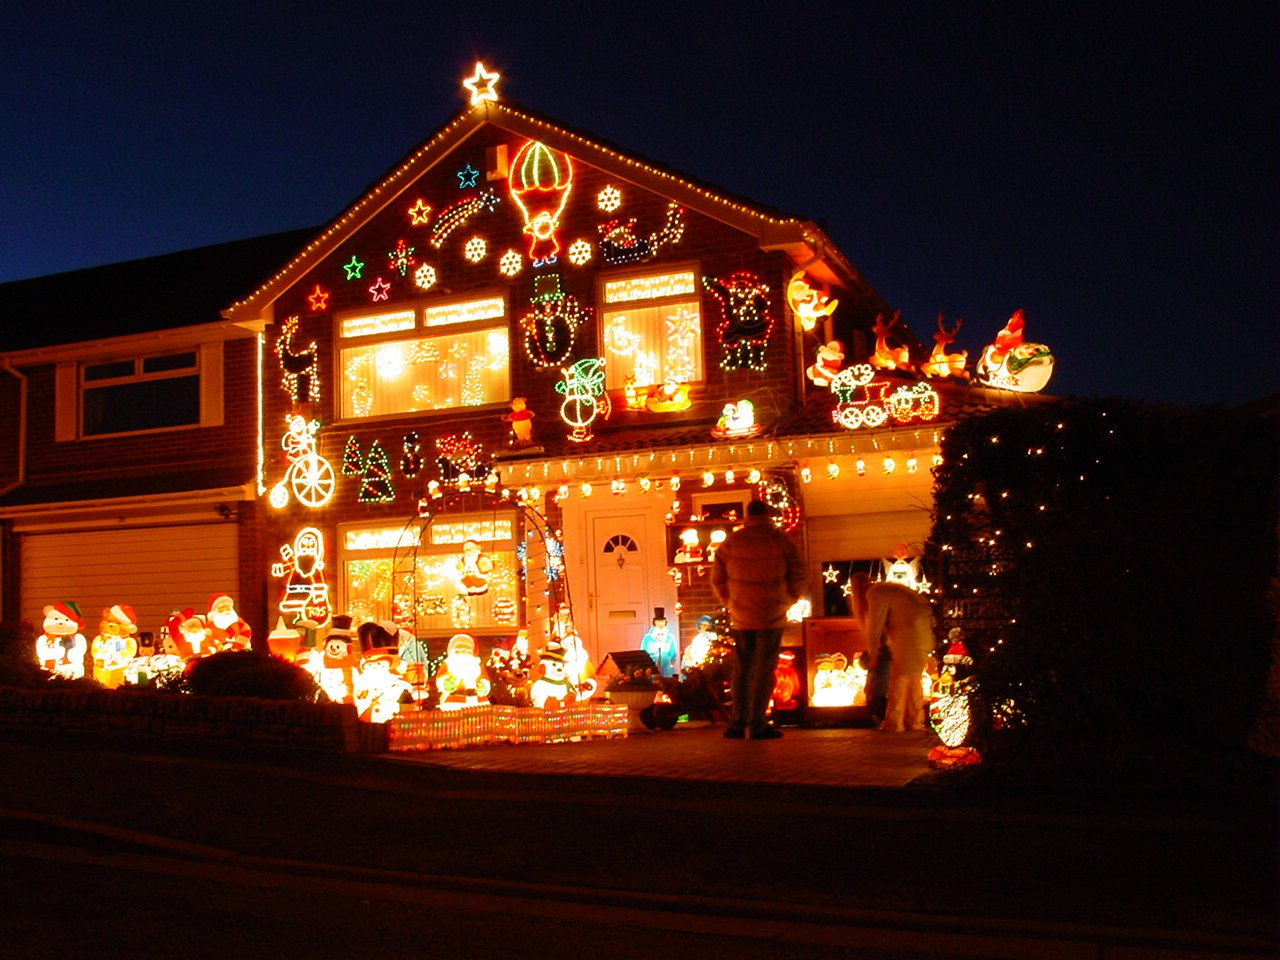 if you celebrate christmas when do you like to decorate your house - When Do You Decorate For Christmas